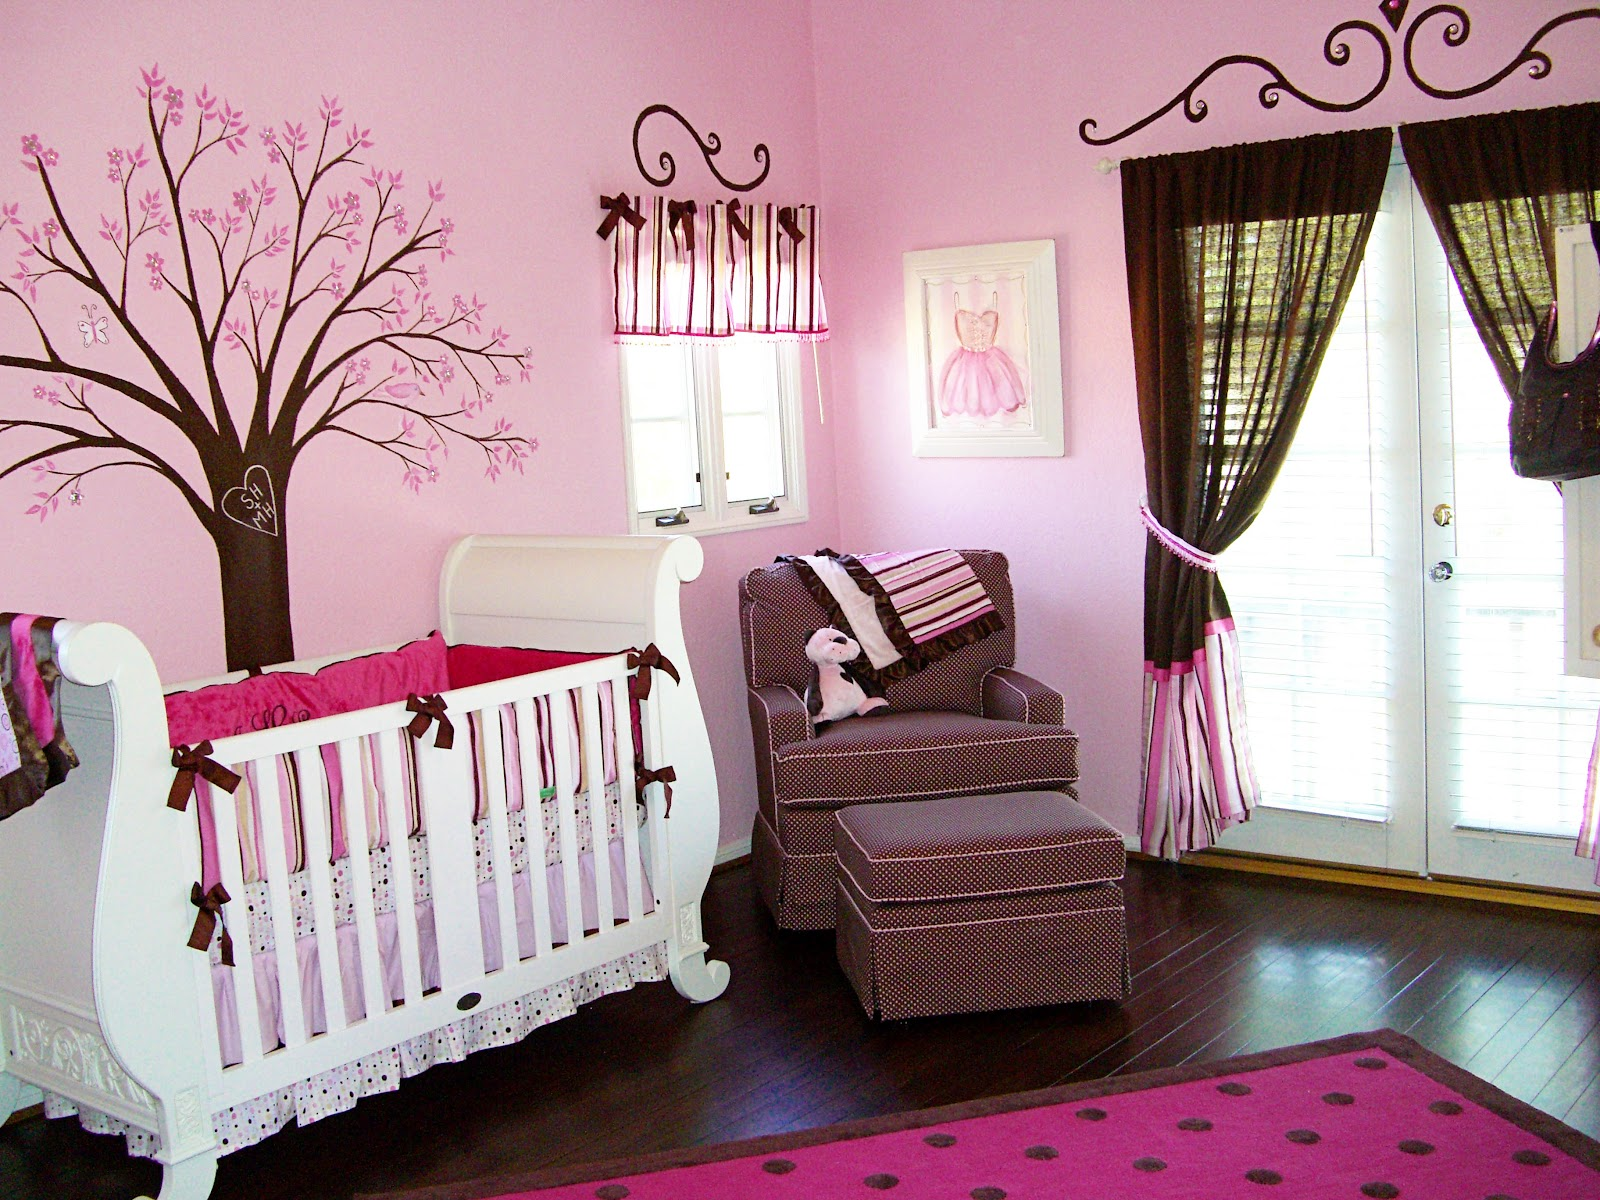 Full pink color girl baby room ideas decorate - Baby nursey ideas ...